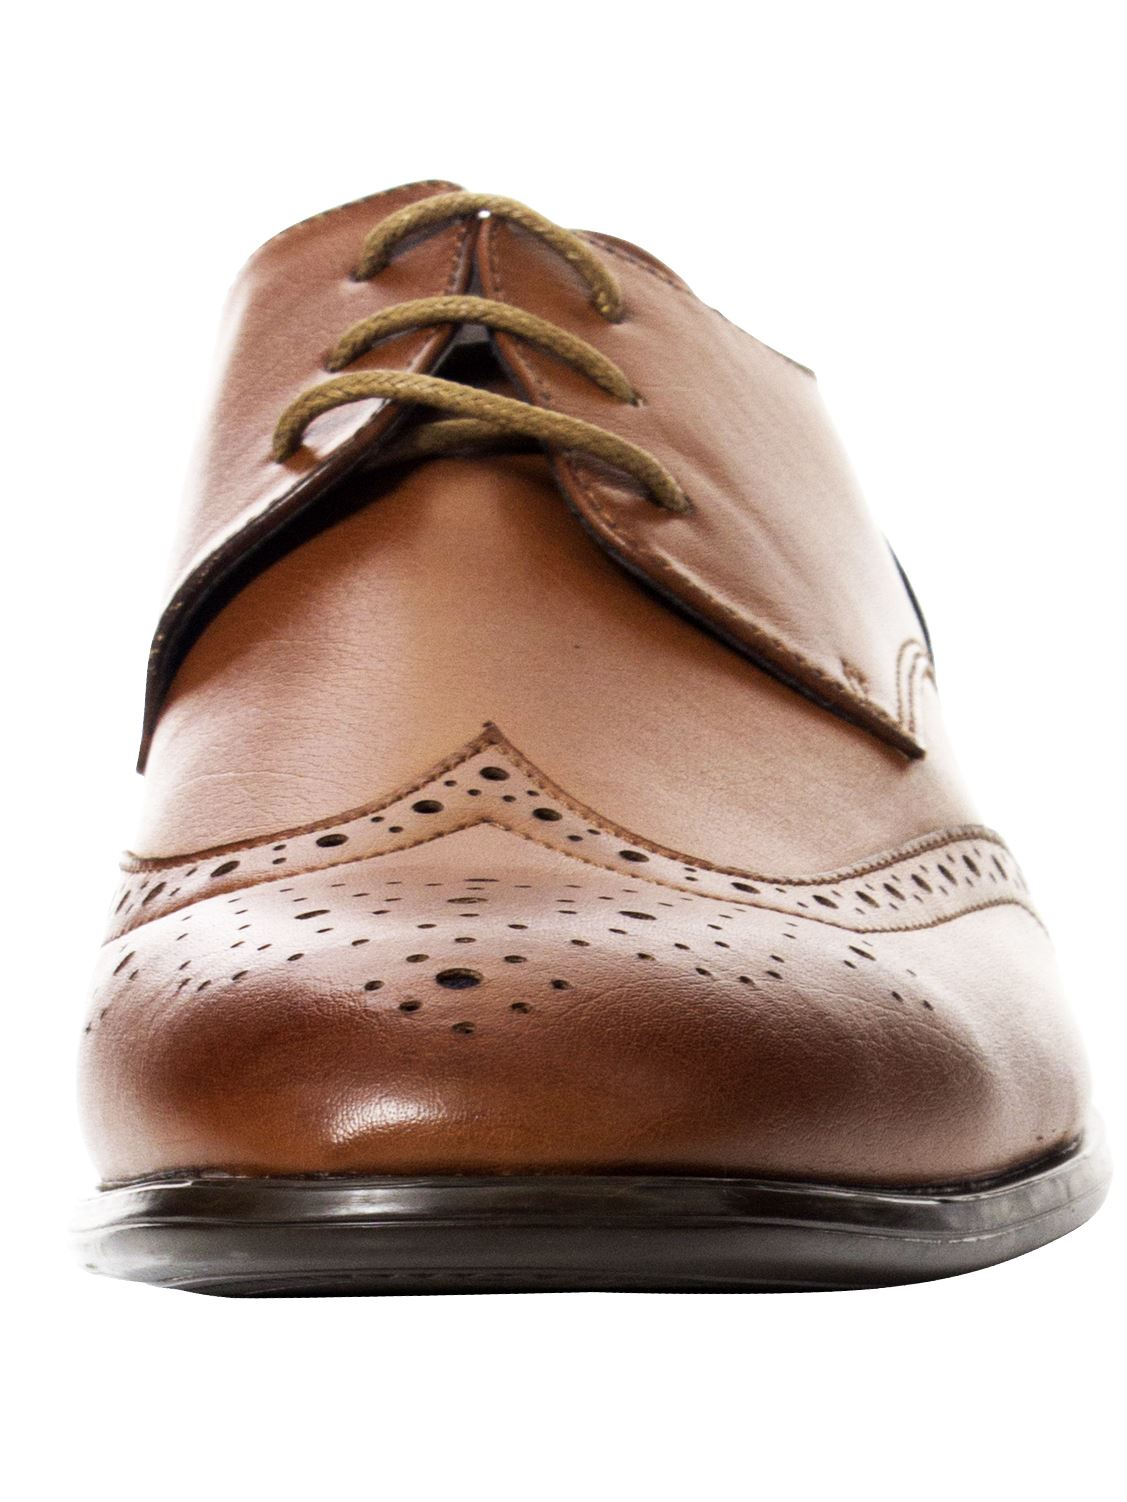 Mens-Faux-Leather-Shoes-Smart-Formal-Wedding-Office-Lace-Up-Designer-Brogues thumbnail 26